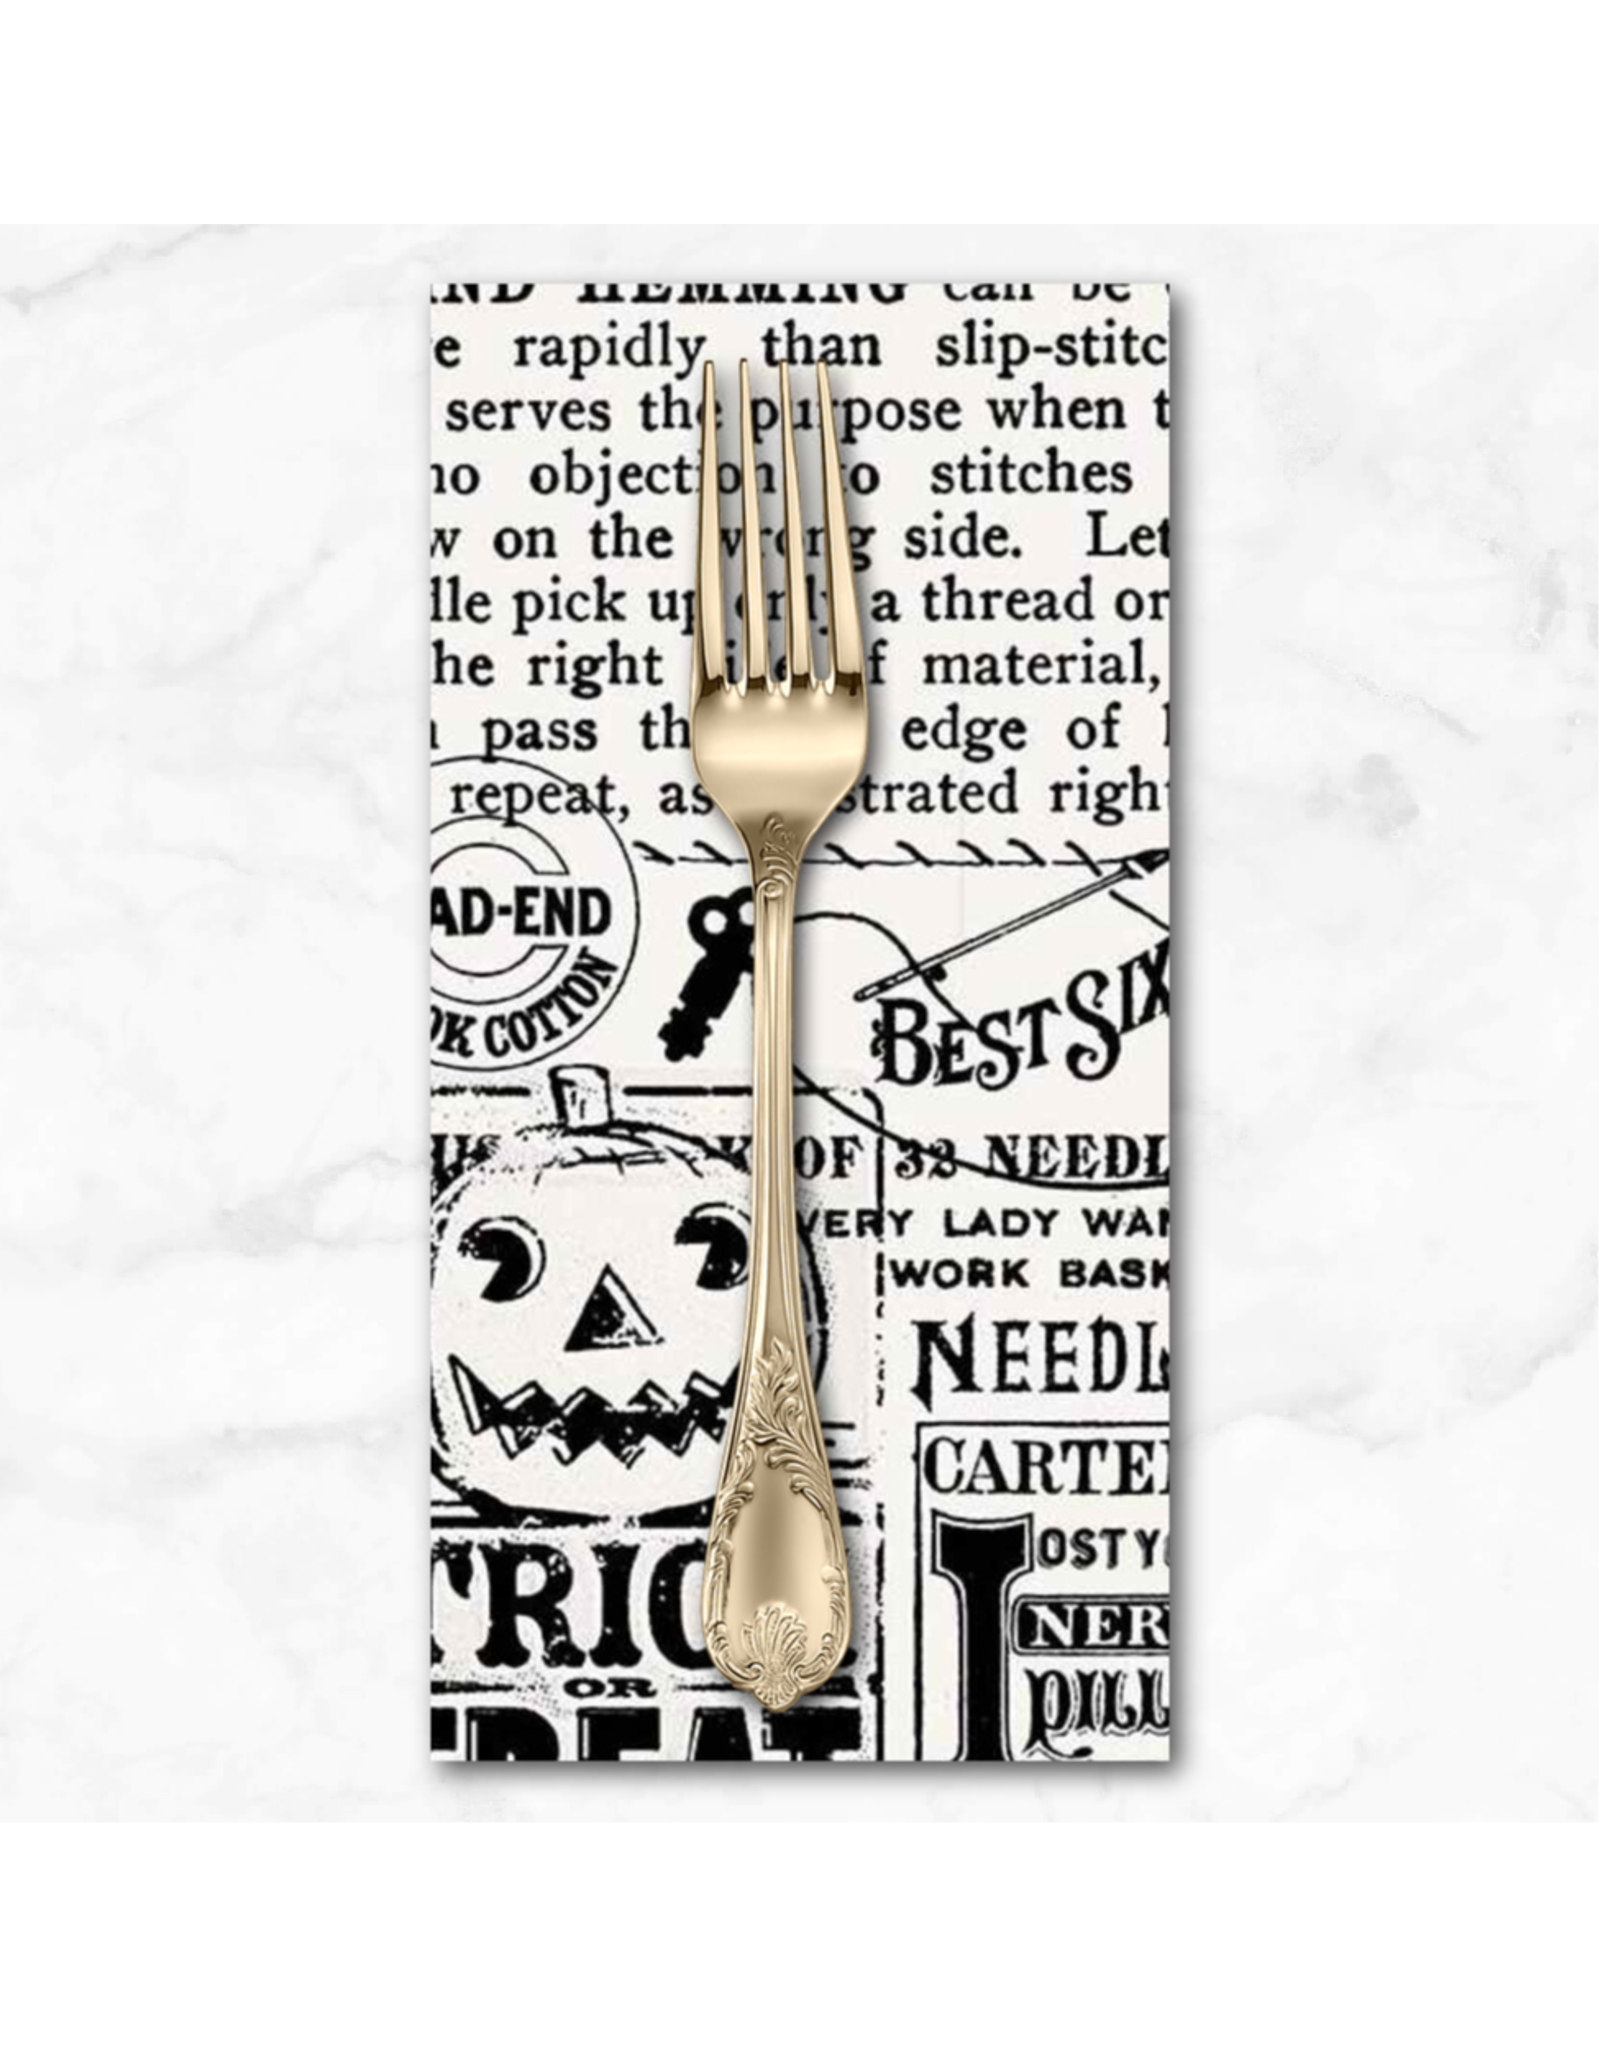 PD's J Wecker Frisch Collection Old Made, Text in Off White, Dinner Napkin